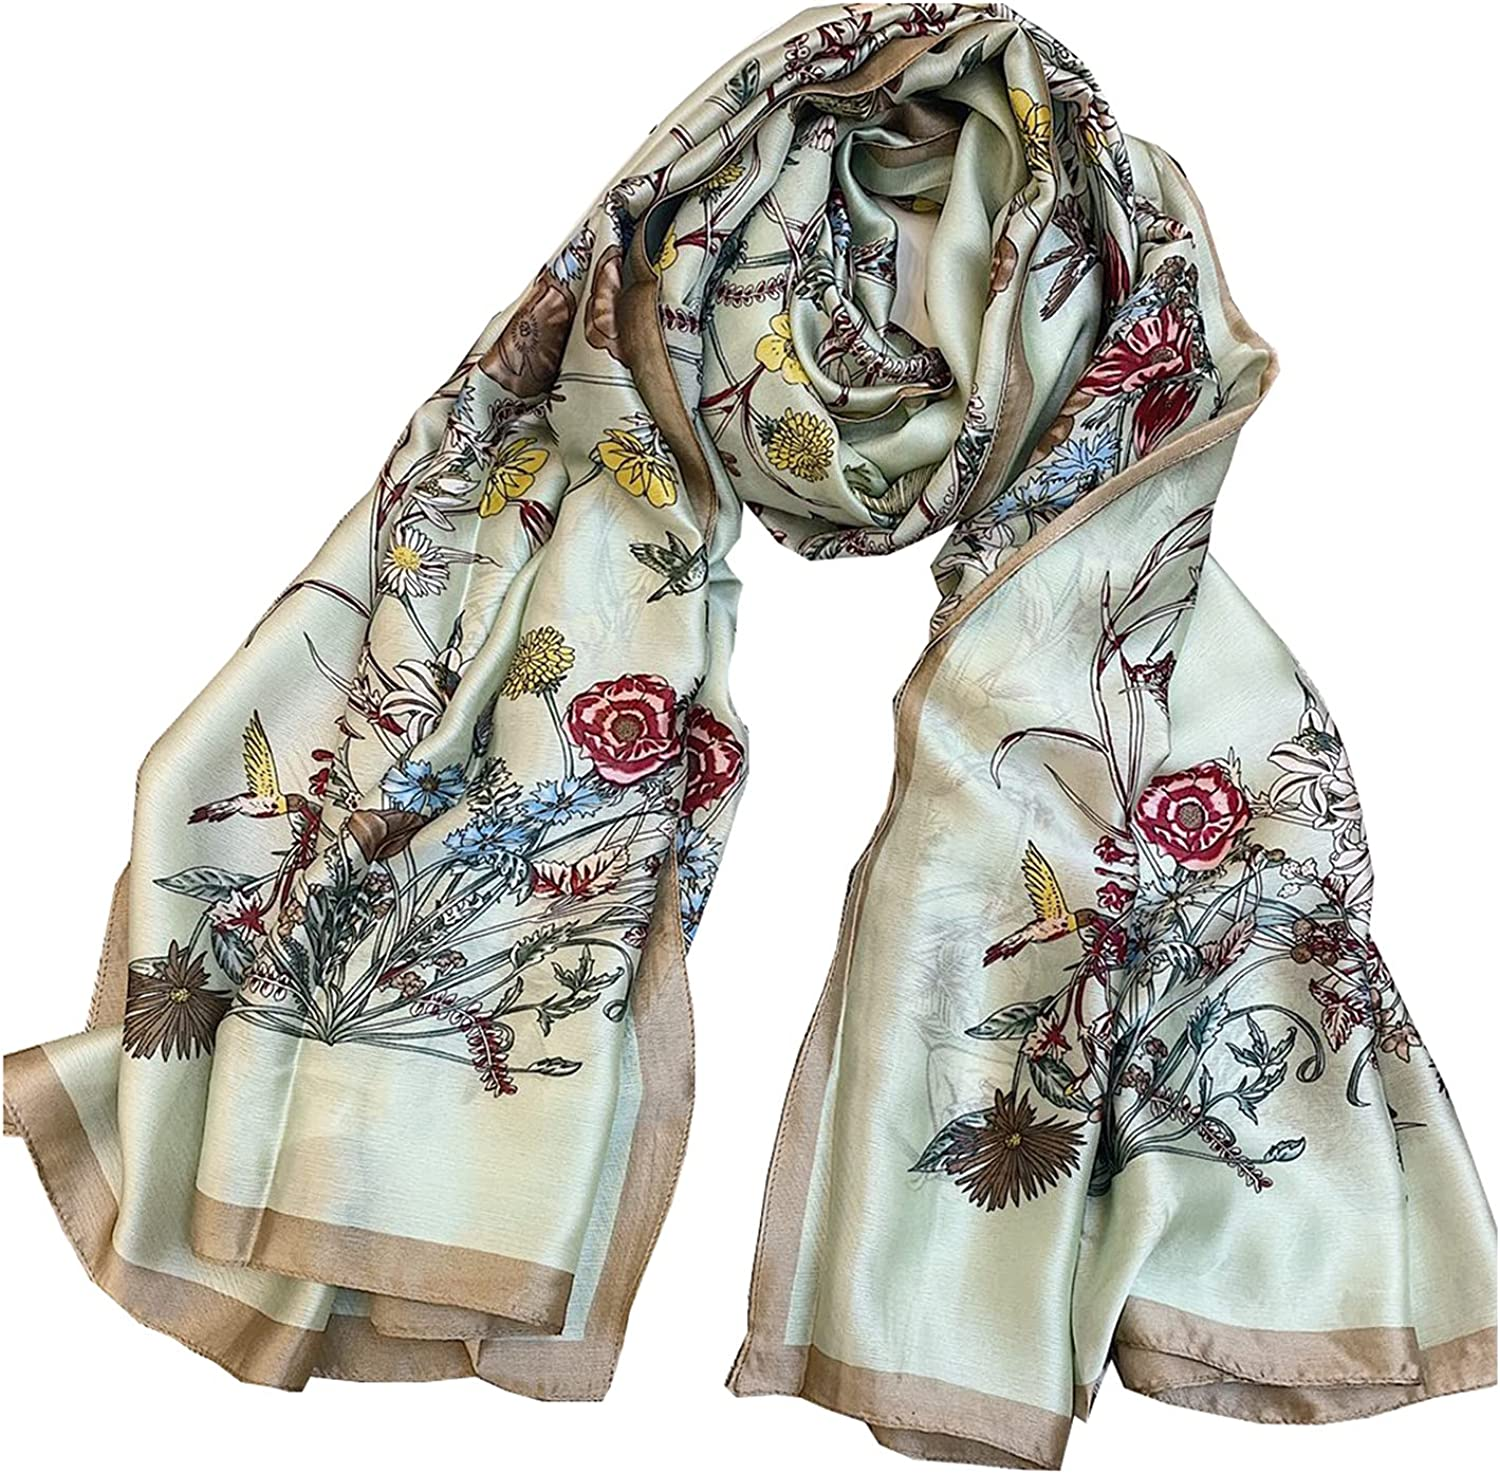 New luxury silk scarf for men and women and luxury Festival gift party partner (B16)